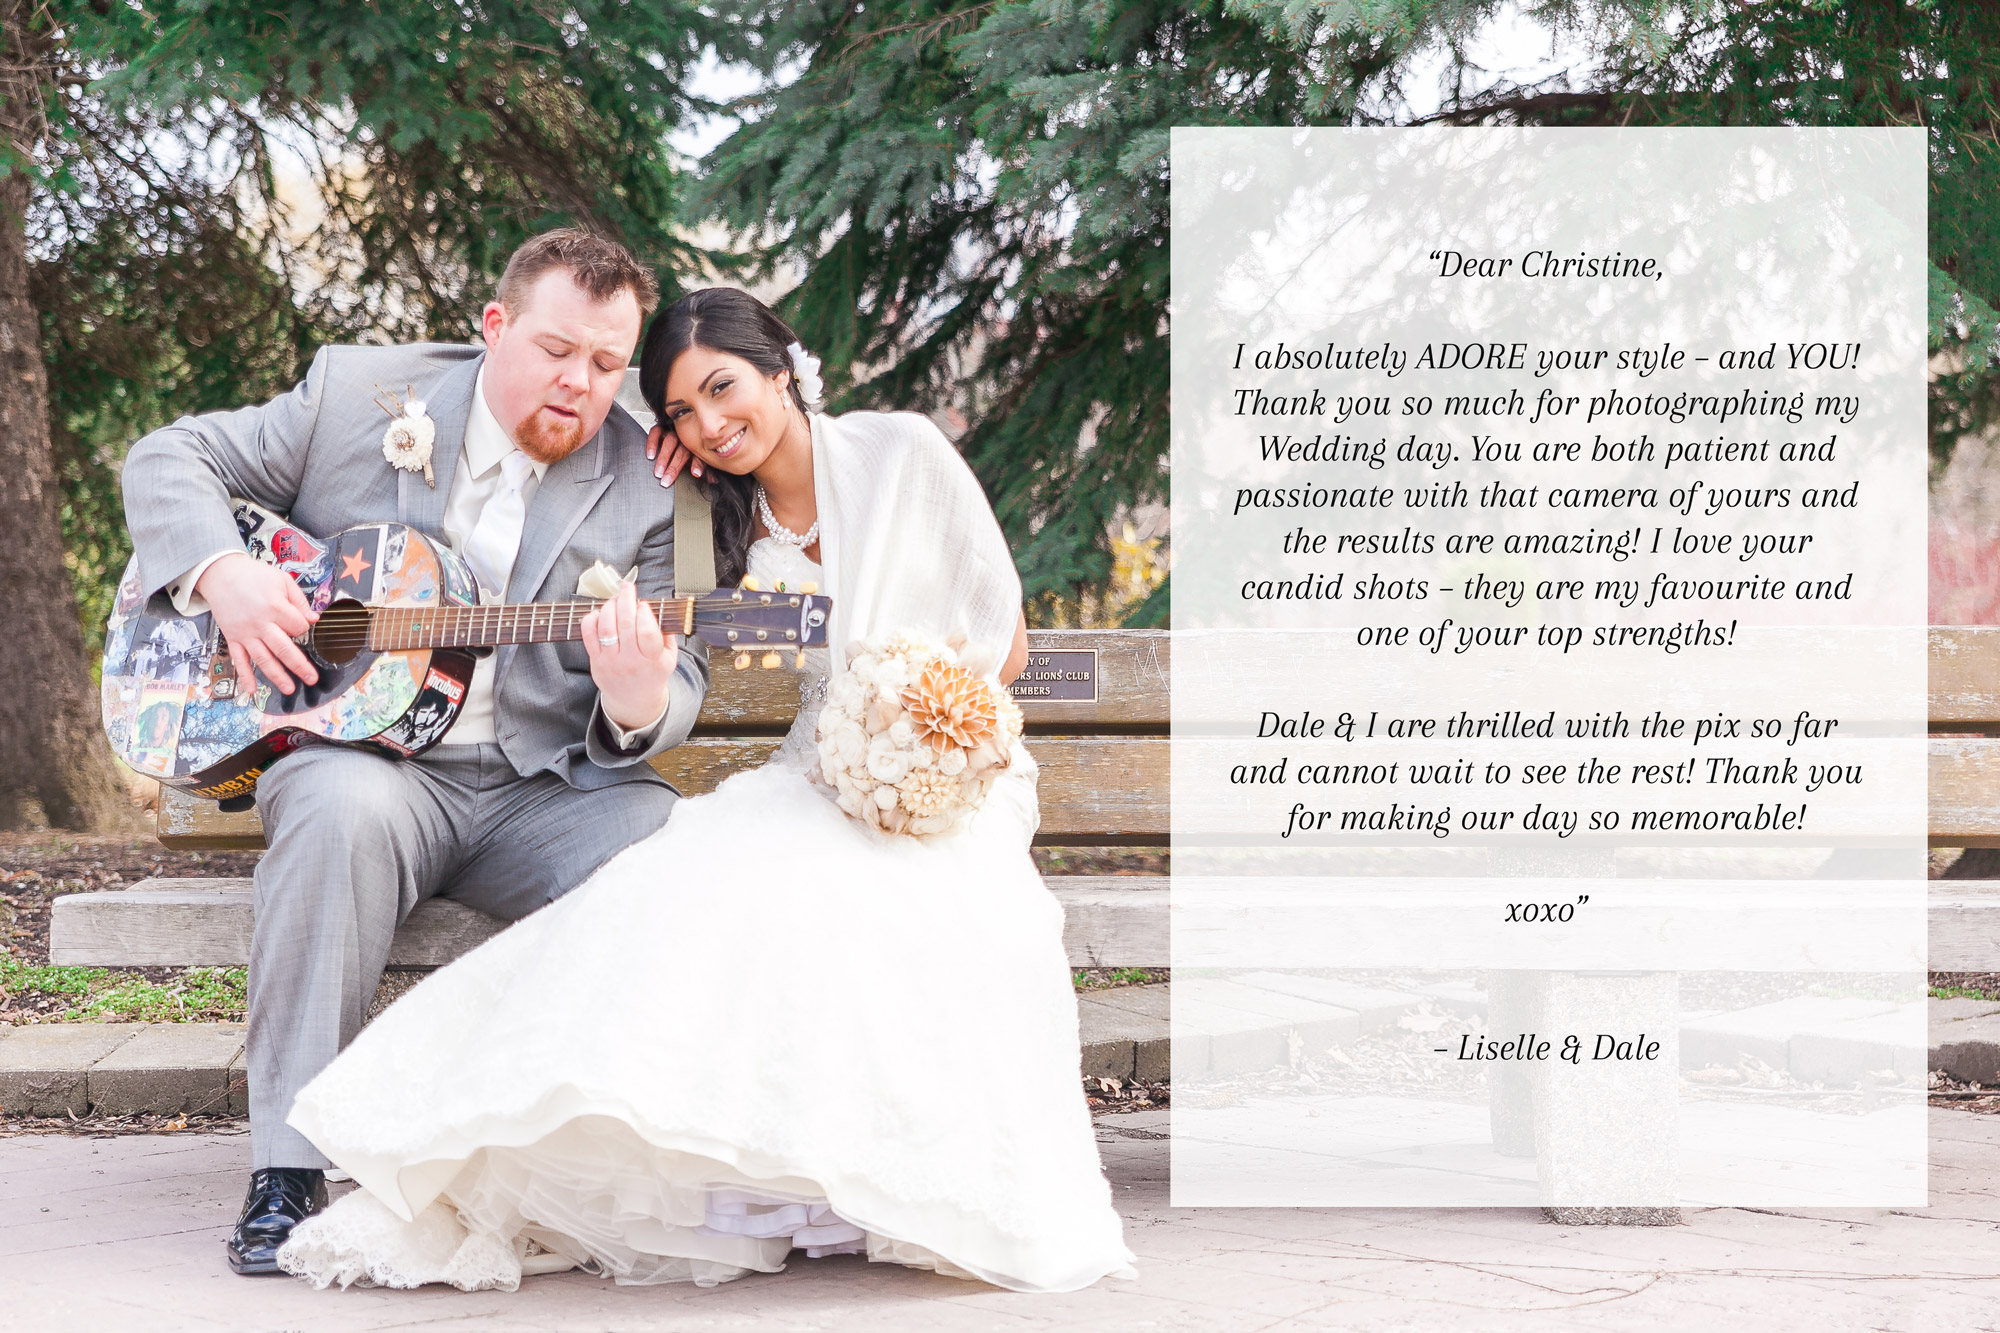 chrilee_photography_wedding_testimonial_rave_liselledale_9309